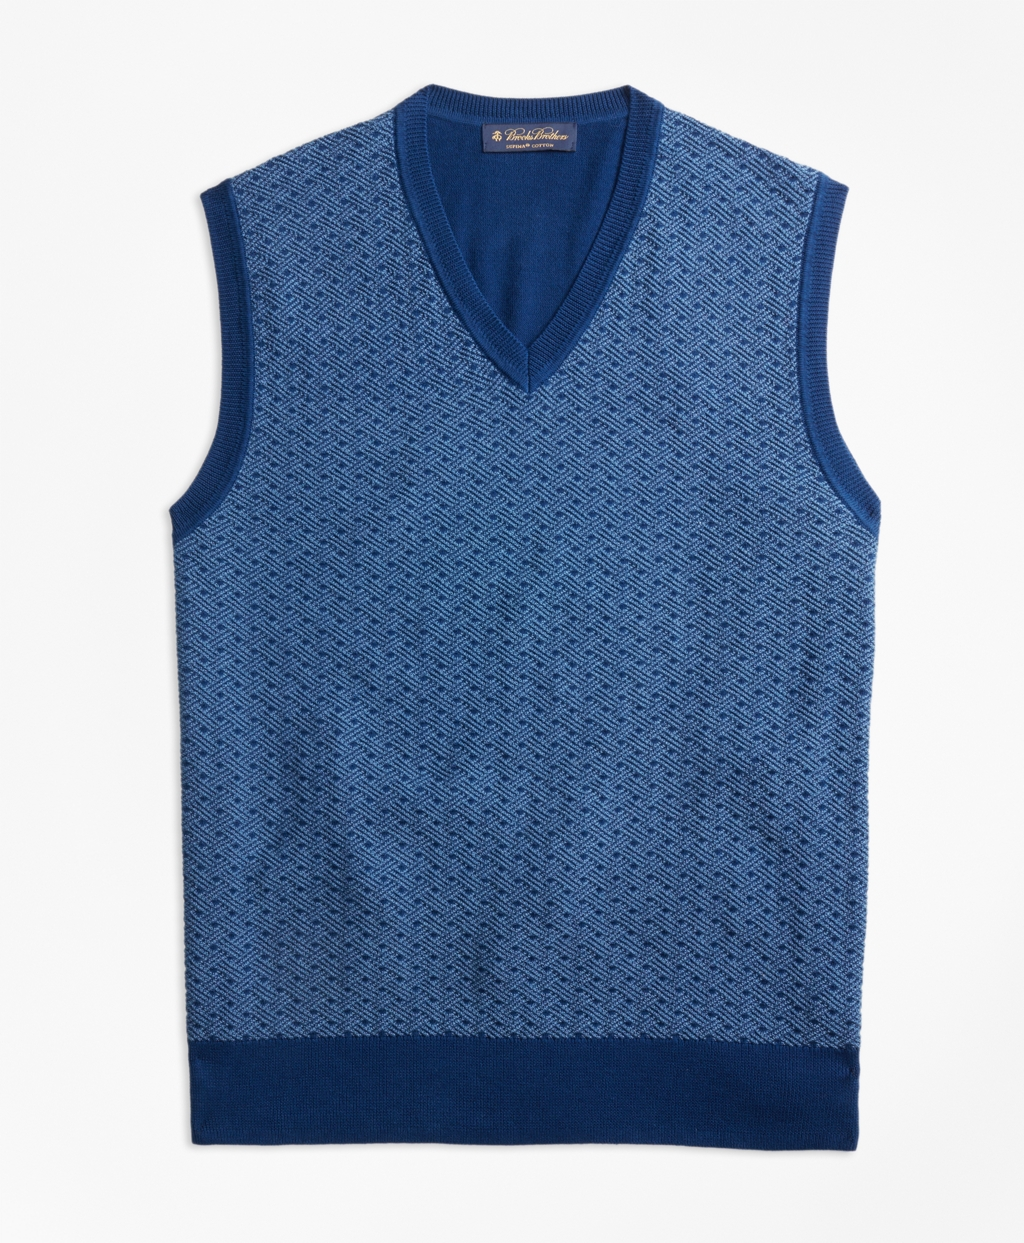 Men's Vintage Vests, Sweater Vests Brooks Brothers Mens Supima Cotton Jacquard Sweater Vest $79.50 AT vintagedancer.com